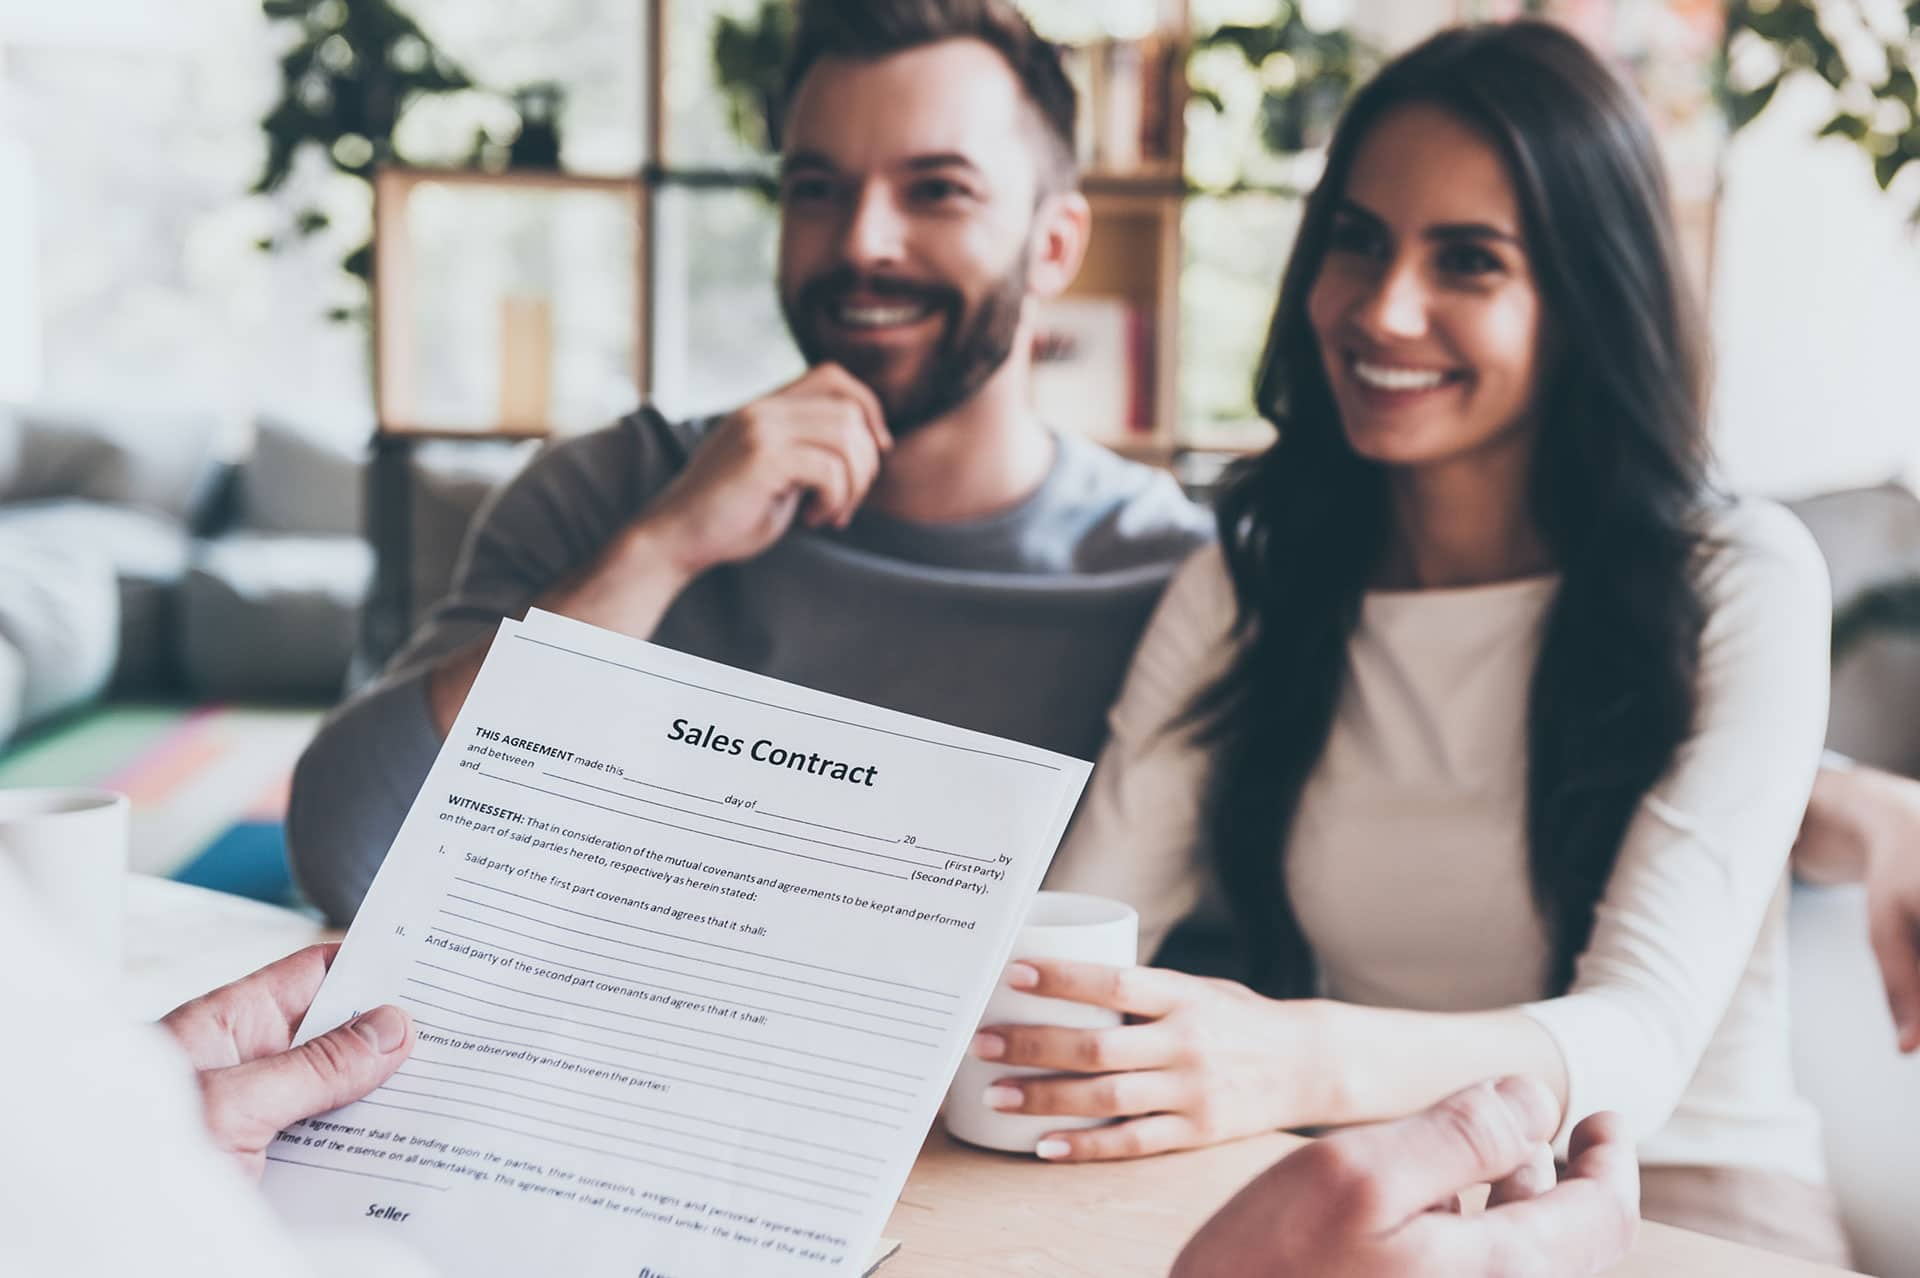 Man with brown hair and a beard and woman with long brown hair are smiling as a hand holds a sales contract in front of them